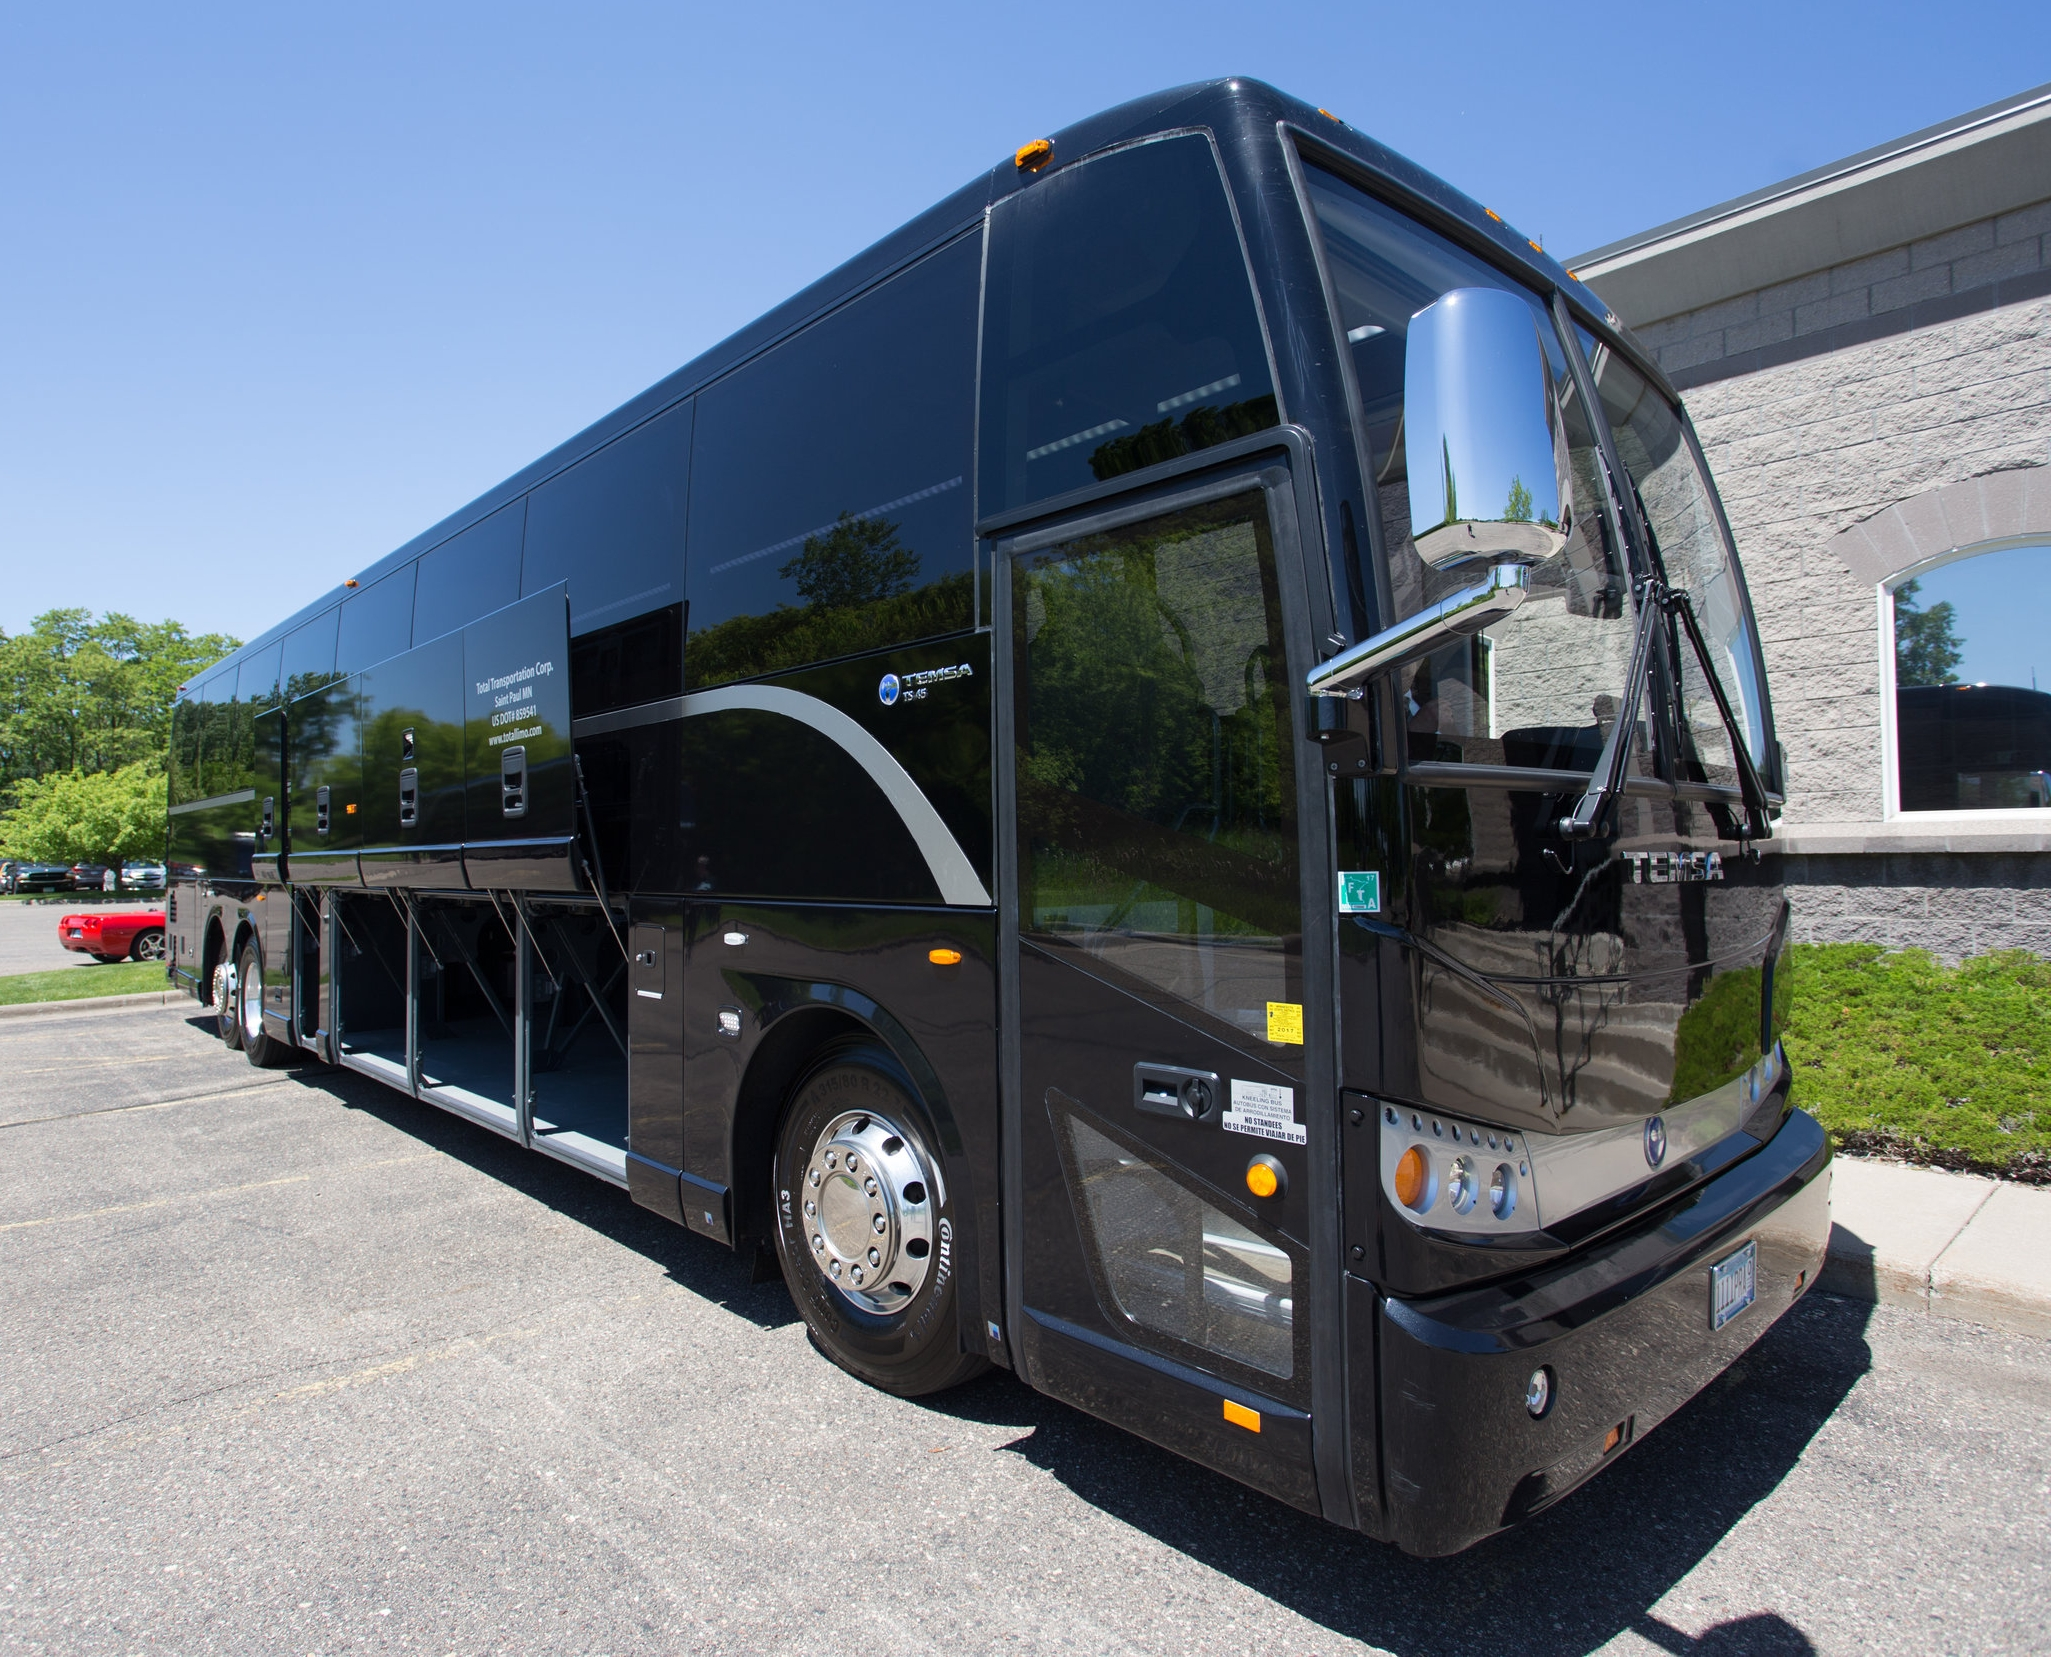 Motorcoaches - Total Motorcoach offers 30, 40, and 56 passenger luxury Motorcoaches that make transporting your group easy and affordable. Move your group around in executive comfort with on-board wi-fi, restroom, and multiple TV's.